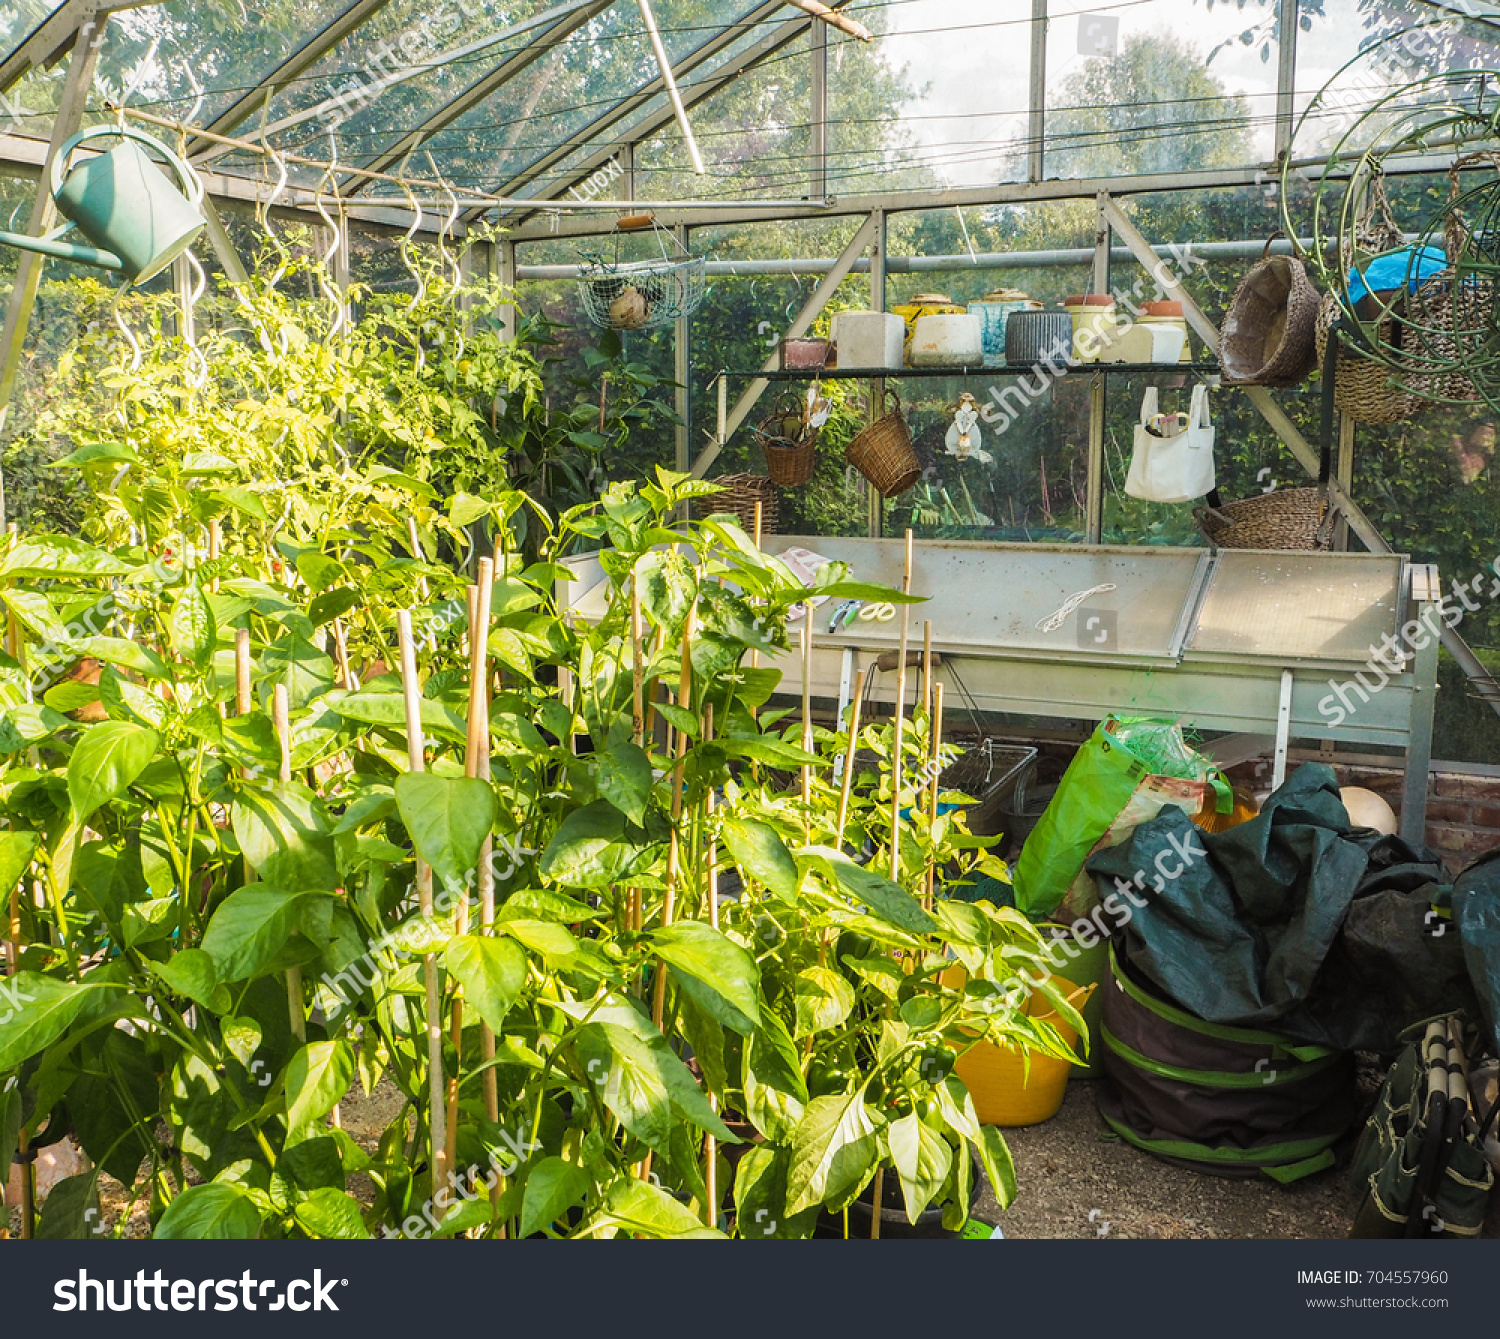 grow raspberries the greenhouse fruits growing to a green gardening popular vegetables and in most house garden